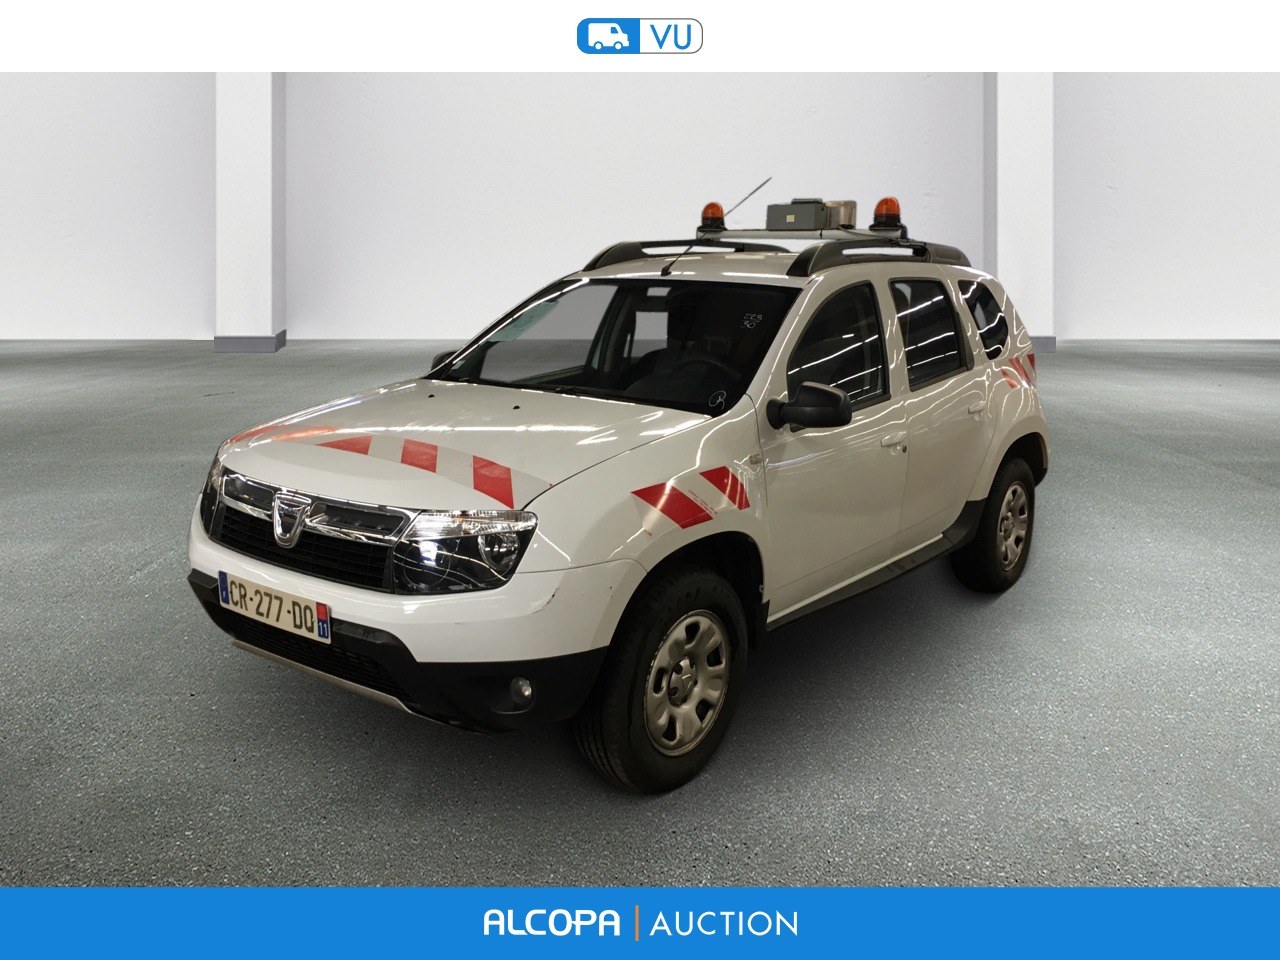 dacia duster duster 1 5 dci 110 4x4 laur ate2 alcopa auction. Black Bedroom Furniture Sets. Home Design Ideas